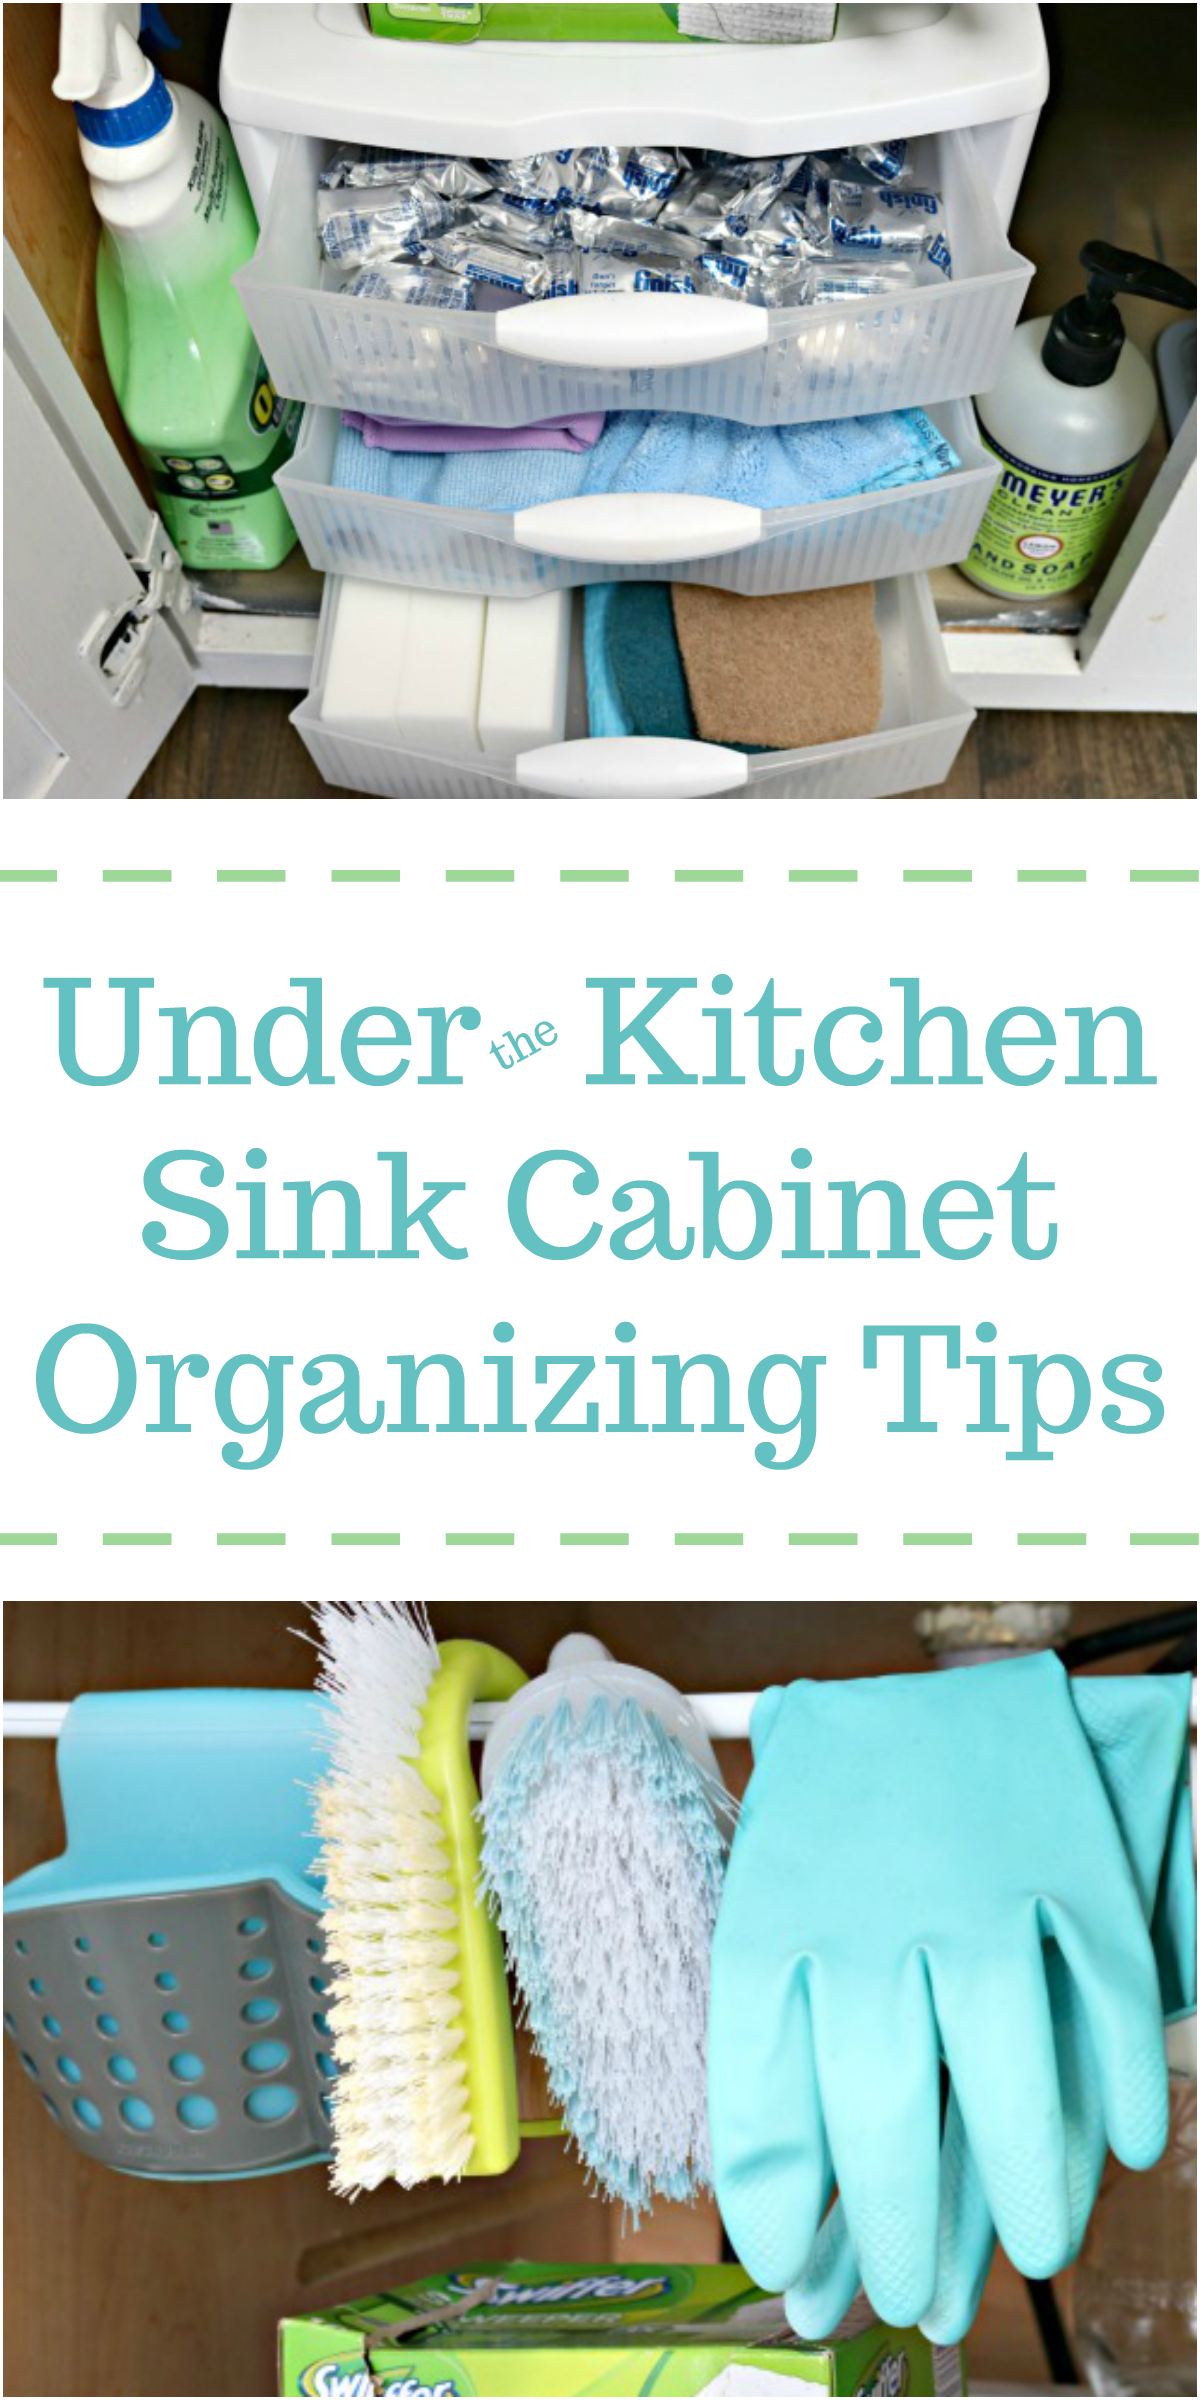 Under the Kitchen Sink Cabinet Organization Tips - Mom 4 Real